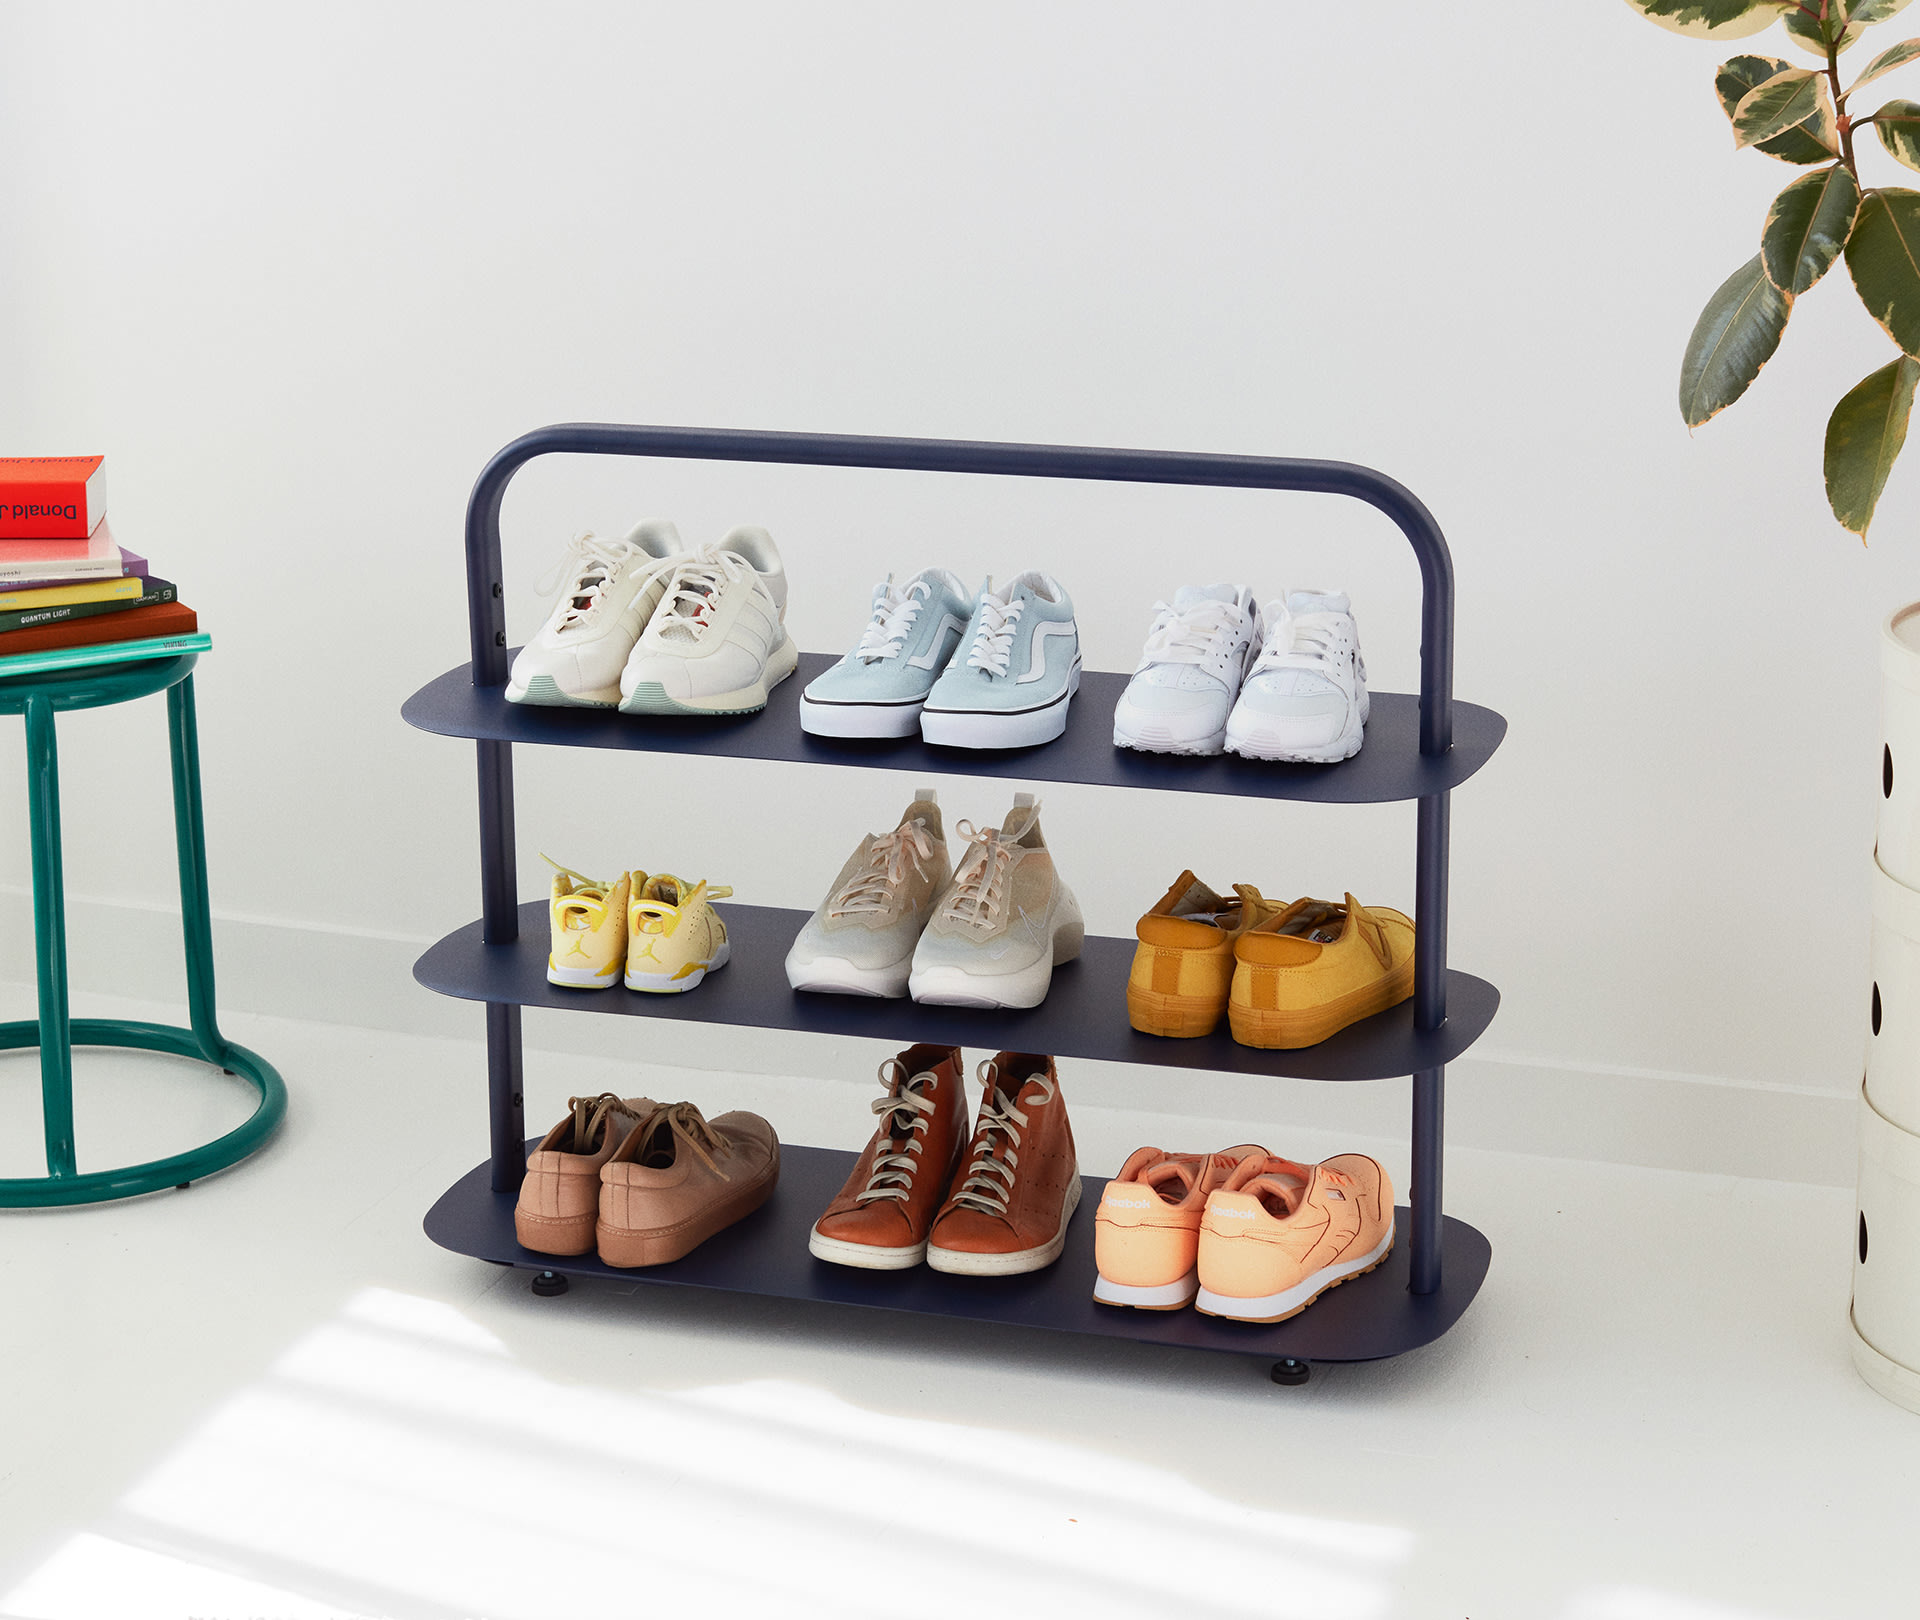 The navy shoe rack which has a handle on top